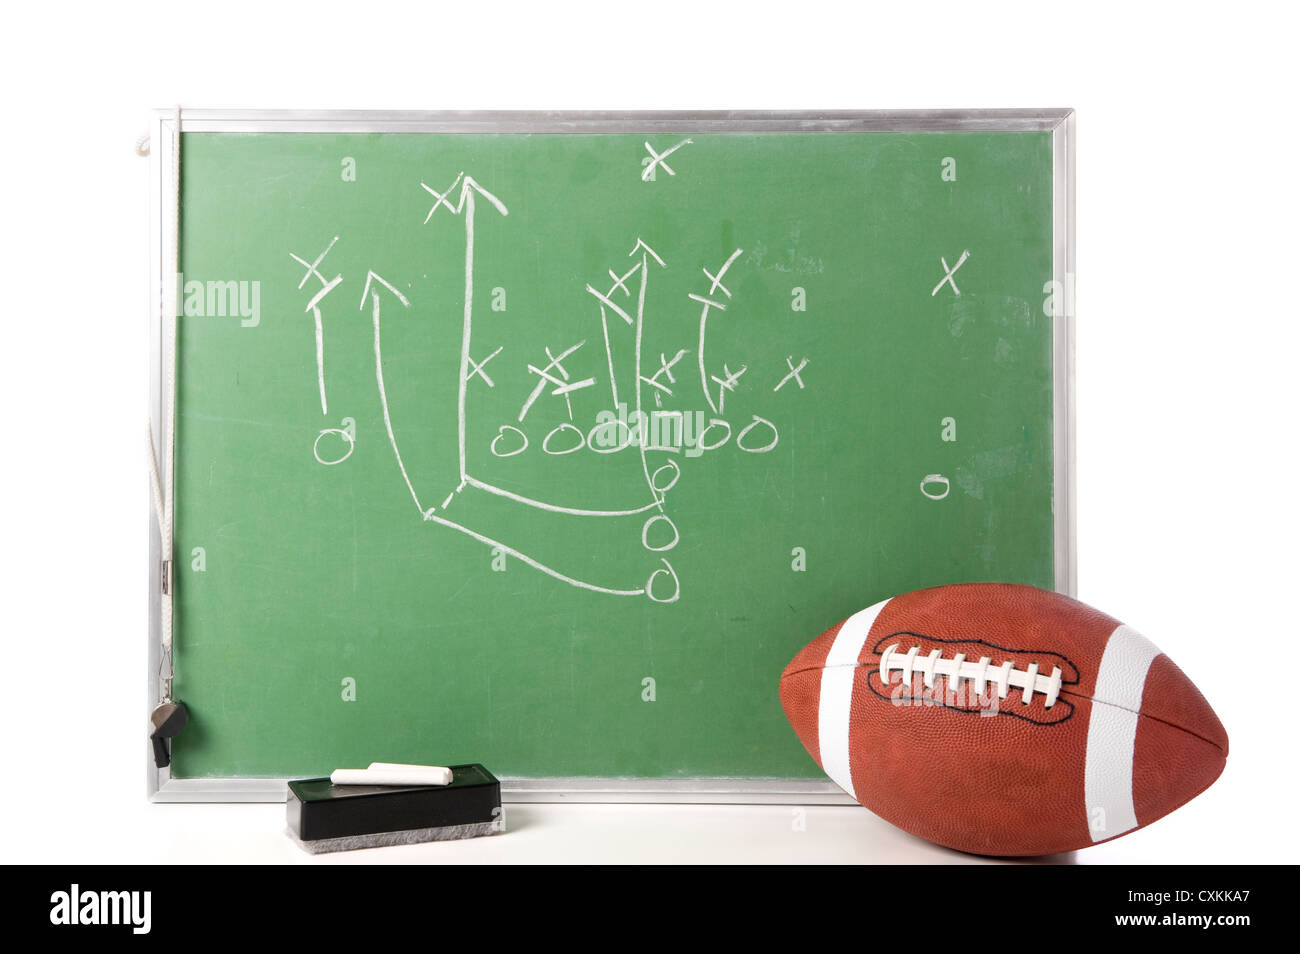 a diagram of a football play on a chalkboard with a football, chalk, eraser  ane a whistle